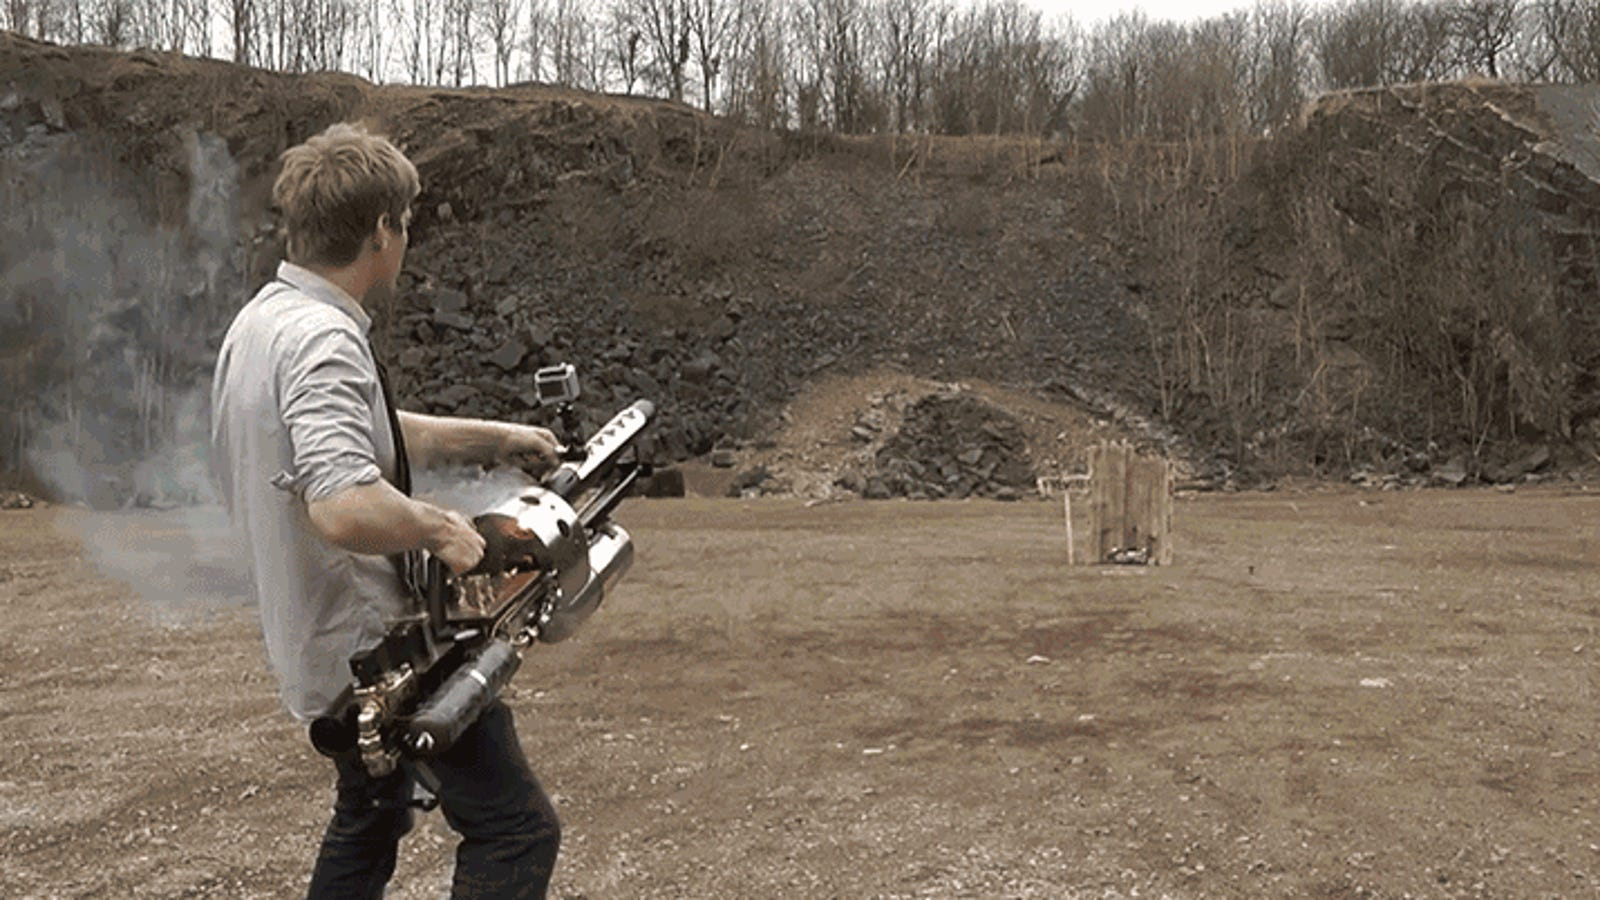 A Wannabe Supervillain Built His Own Thermite Cannon